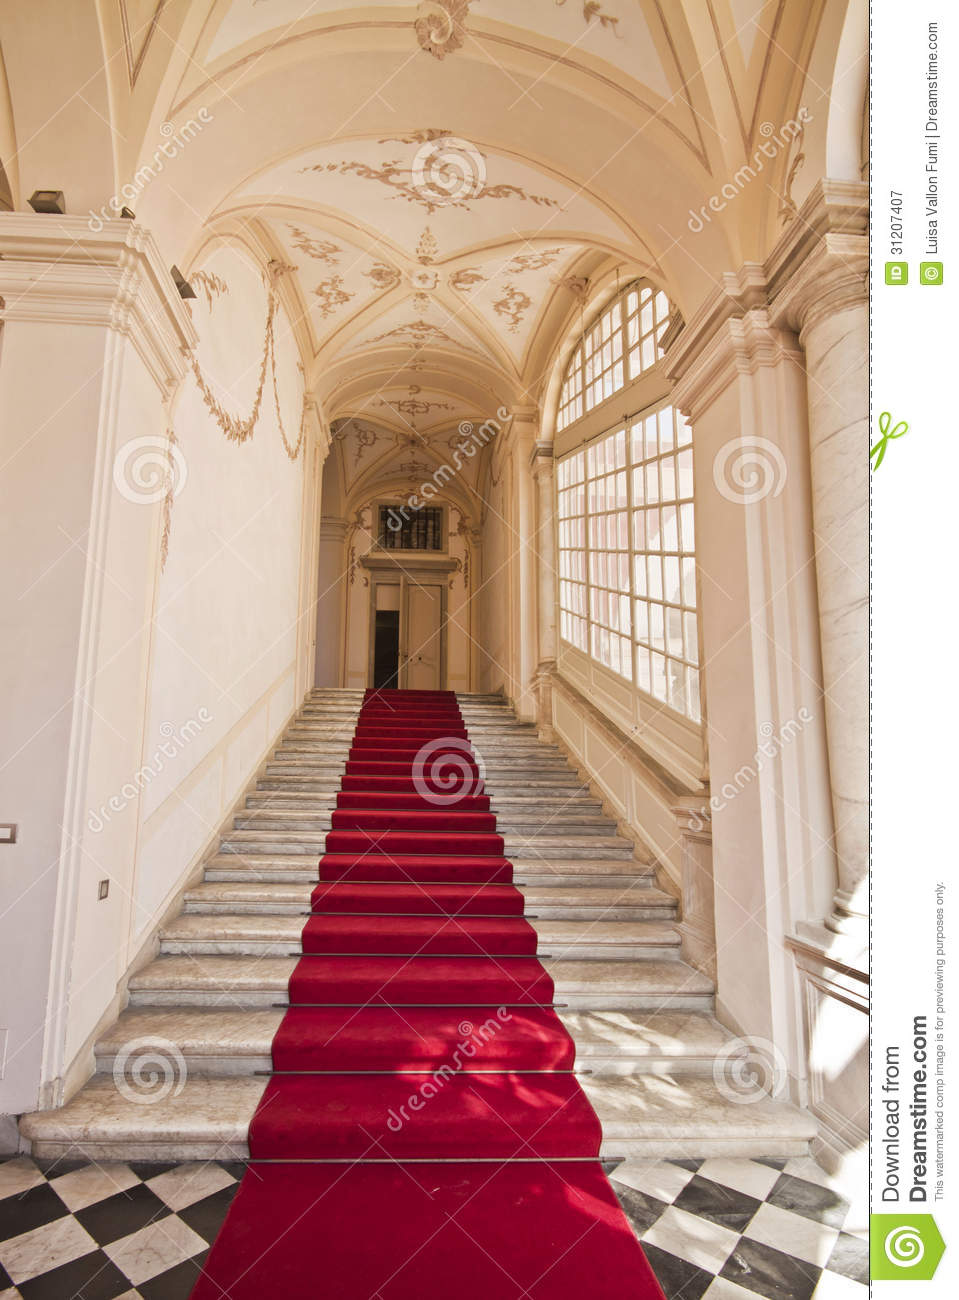 3d Wallpaper For Bedroom Uk Genoa Italy Royal Palace Entrance Hall Staircase